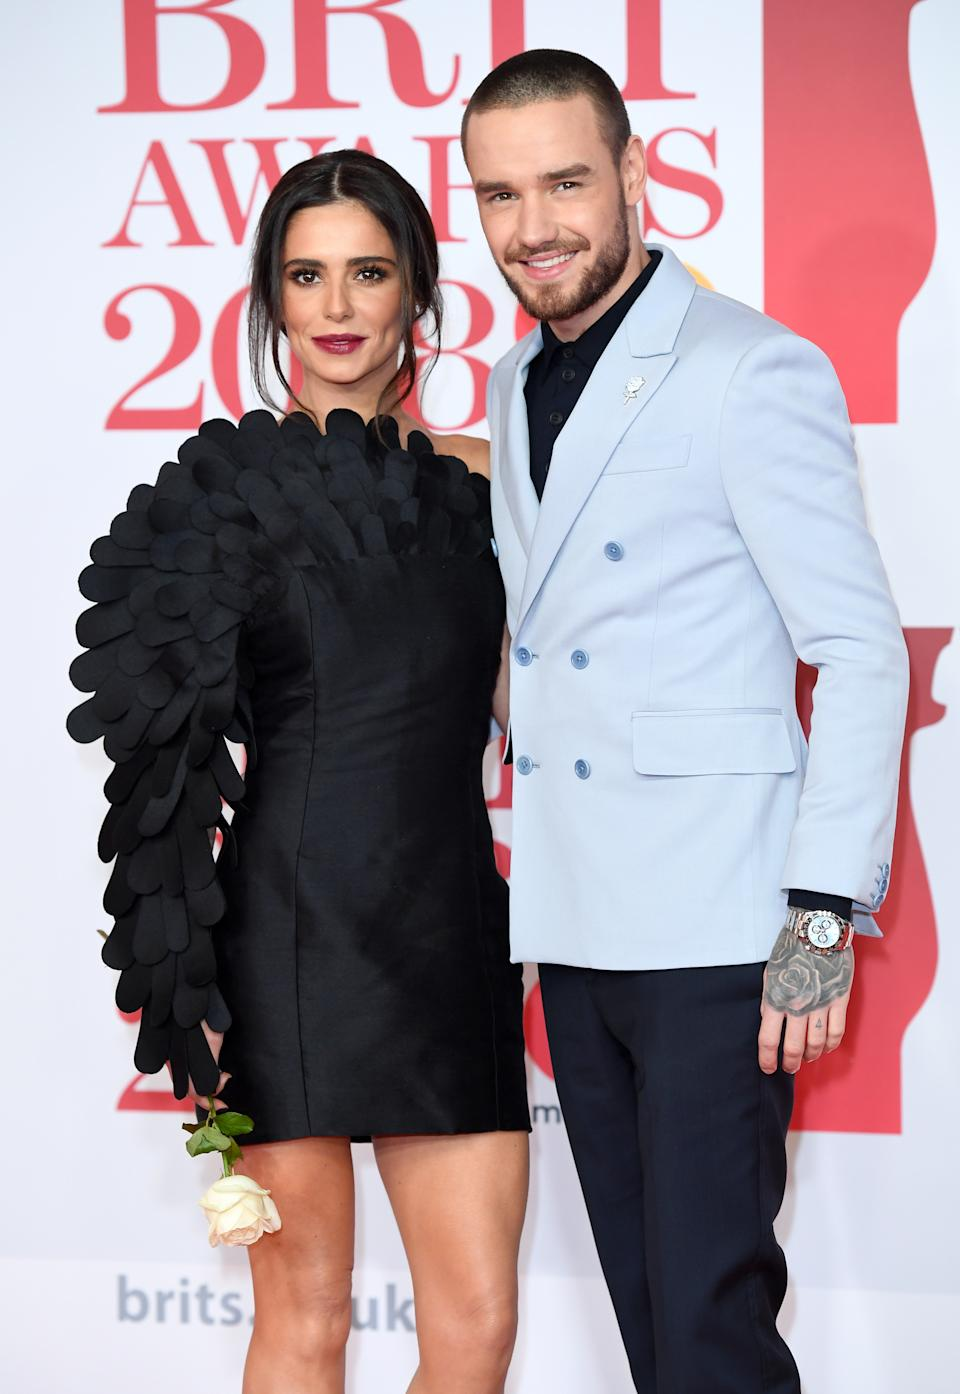 Cheryl and Liam Payne split in 2018. (Photo by Karwai Tang/WireImage)